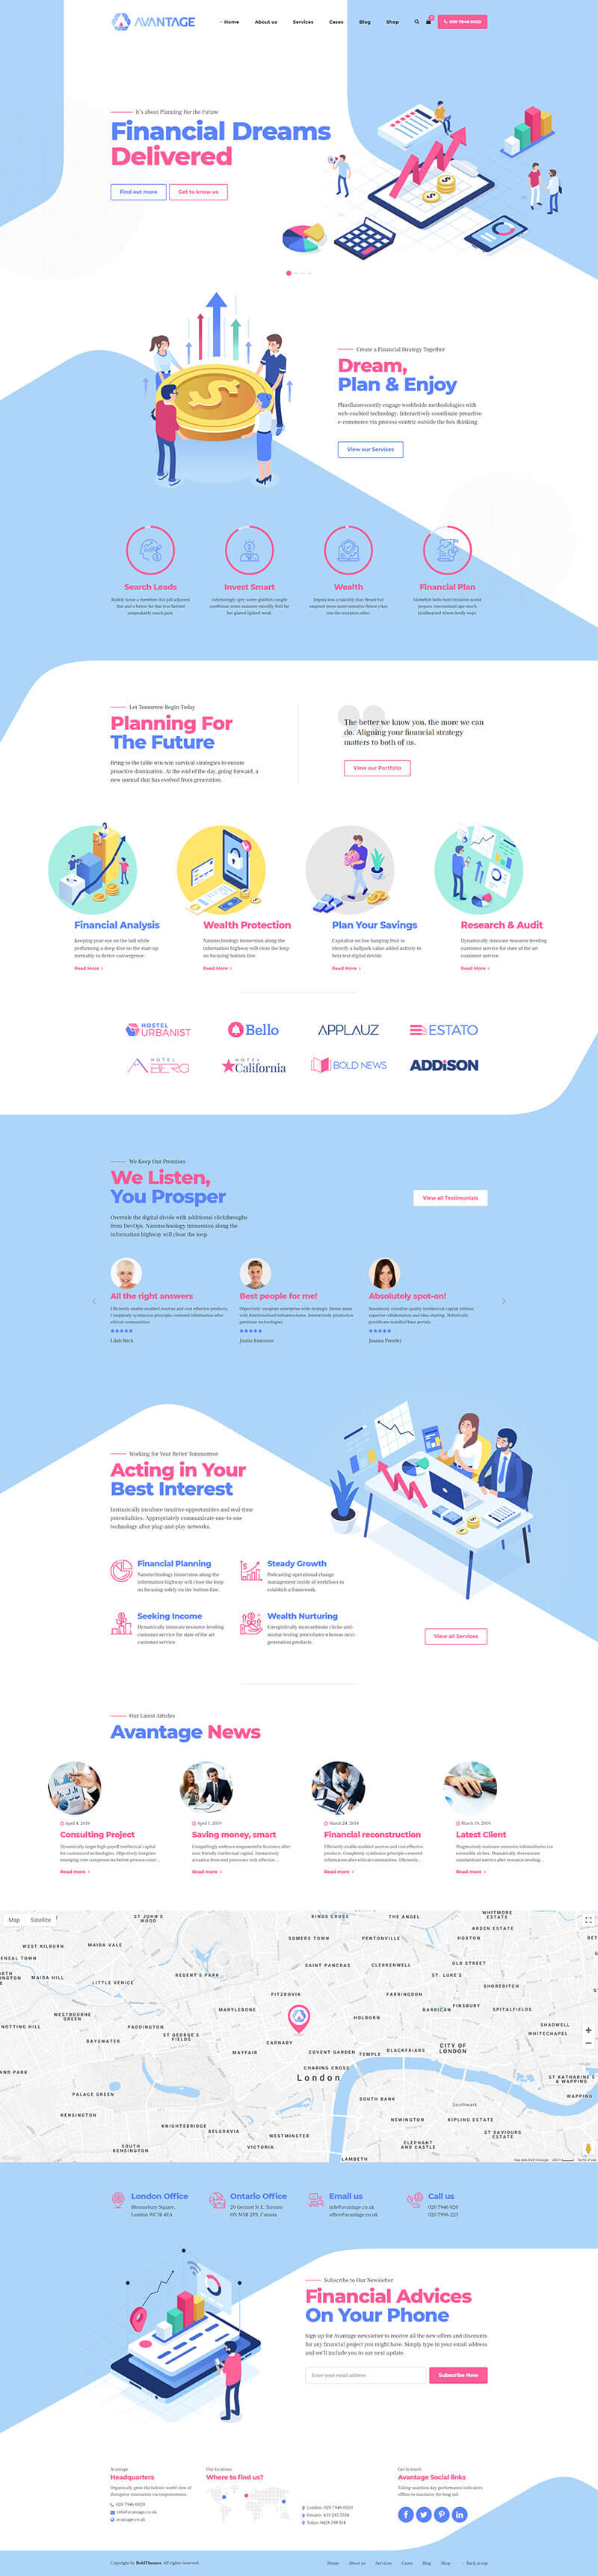 https://avantage.bold-themes.com/wp-content/uploads/2019/05/demo-04-financial.jpg